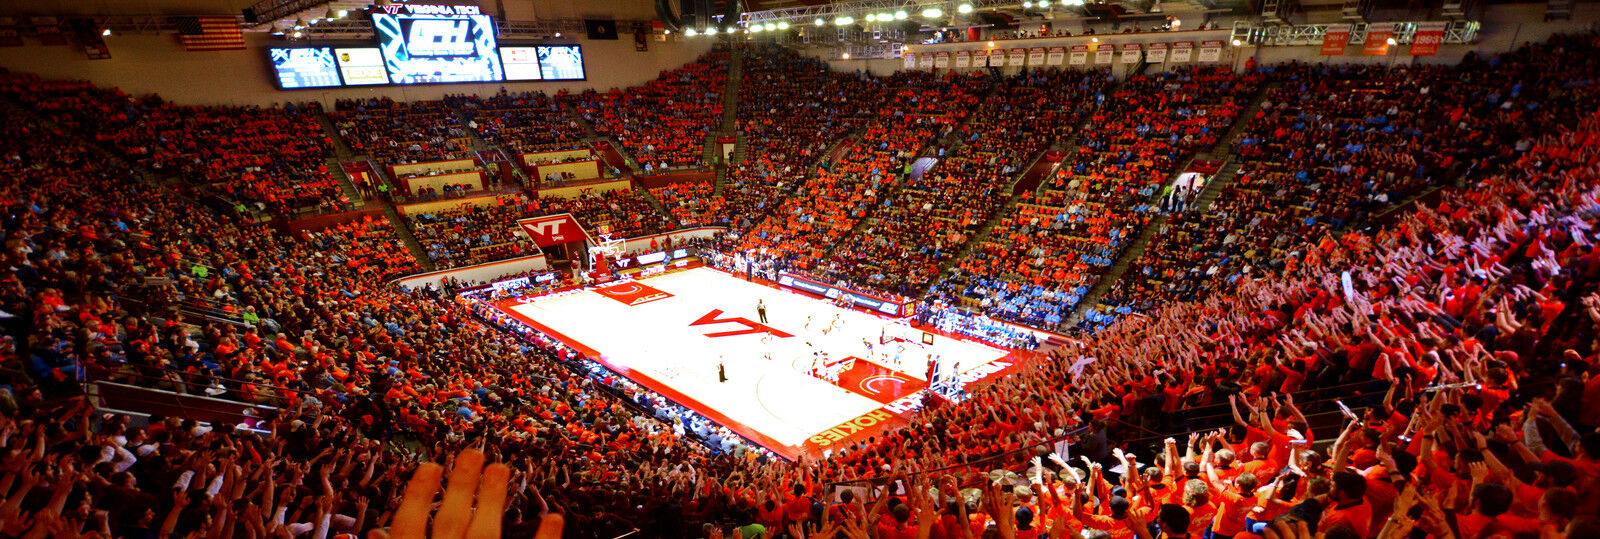 North Carolina State Wolfpack at Virginia Tech Hokies Basketball